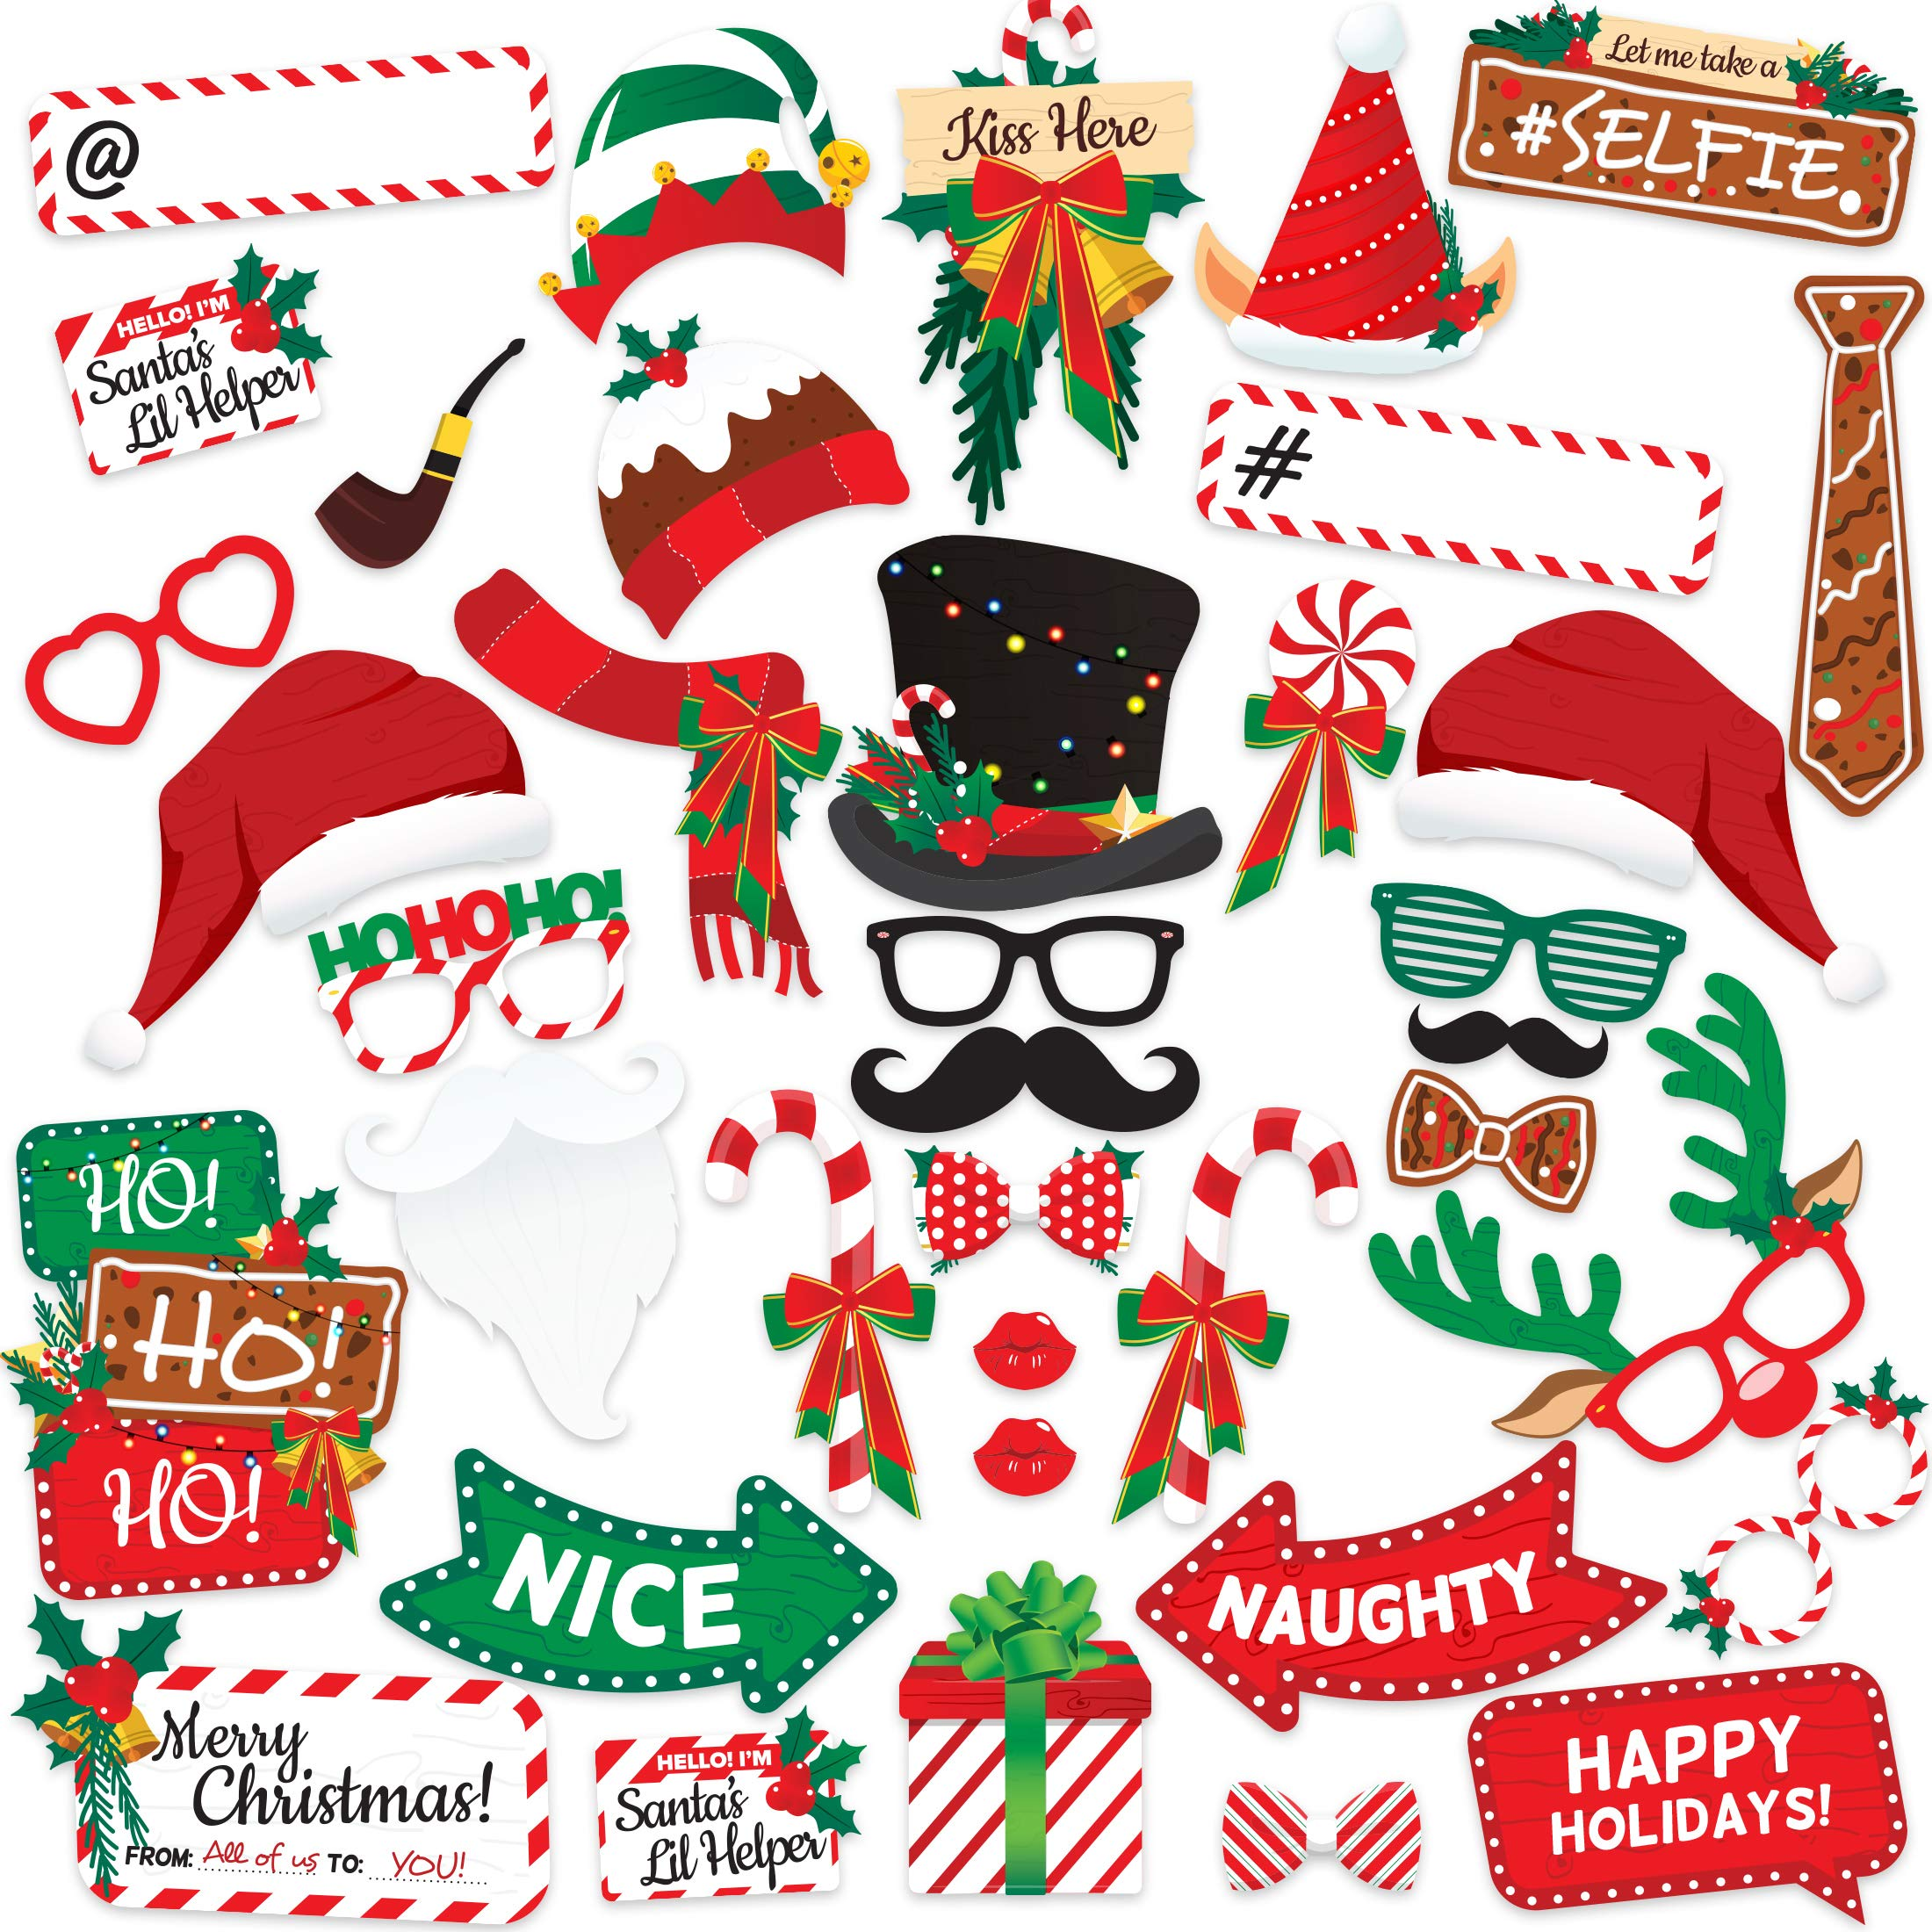 CDM product Christmas Party (38 Piece) Photo Booth Props Kit for Pictures – Artist Rendered Xmas Supplies Set – Backdrop Decoration Décor – Variety Favors & Games For Kids and Adults big image